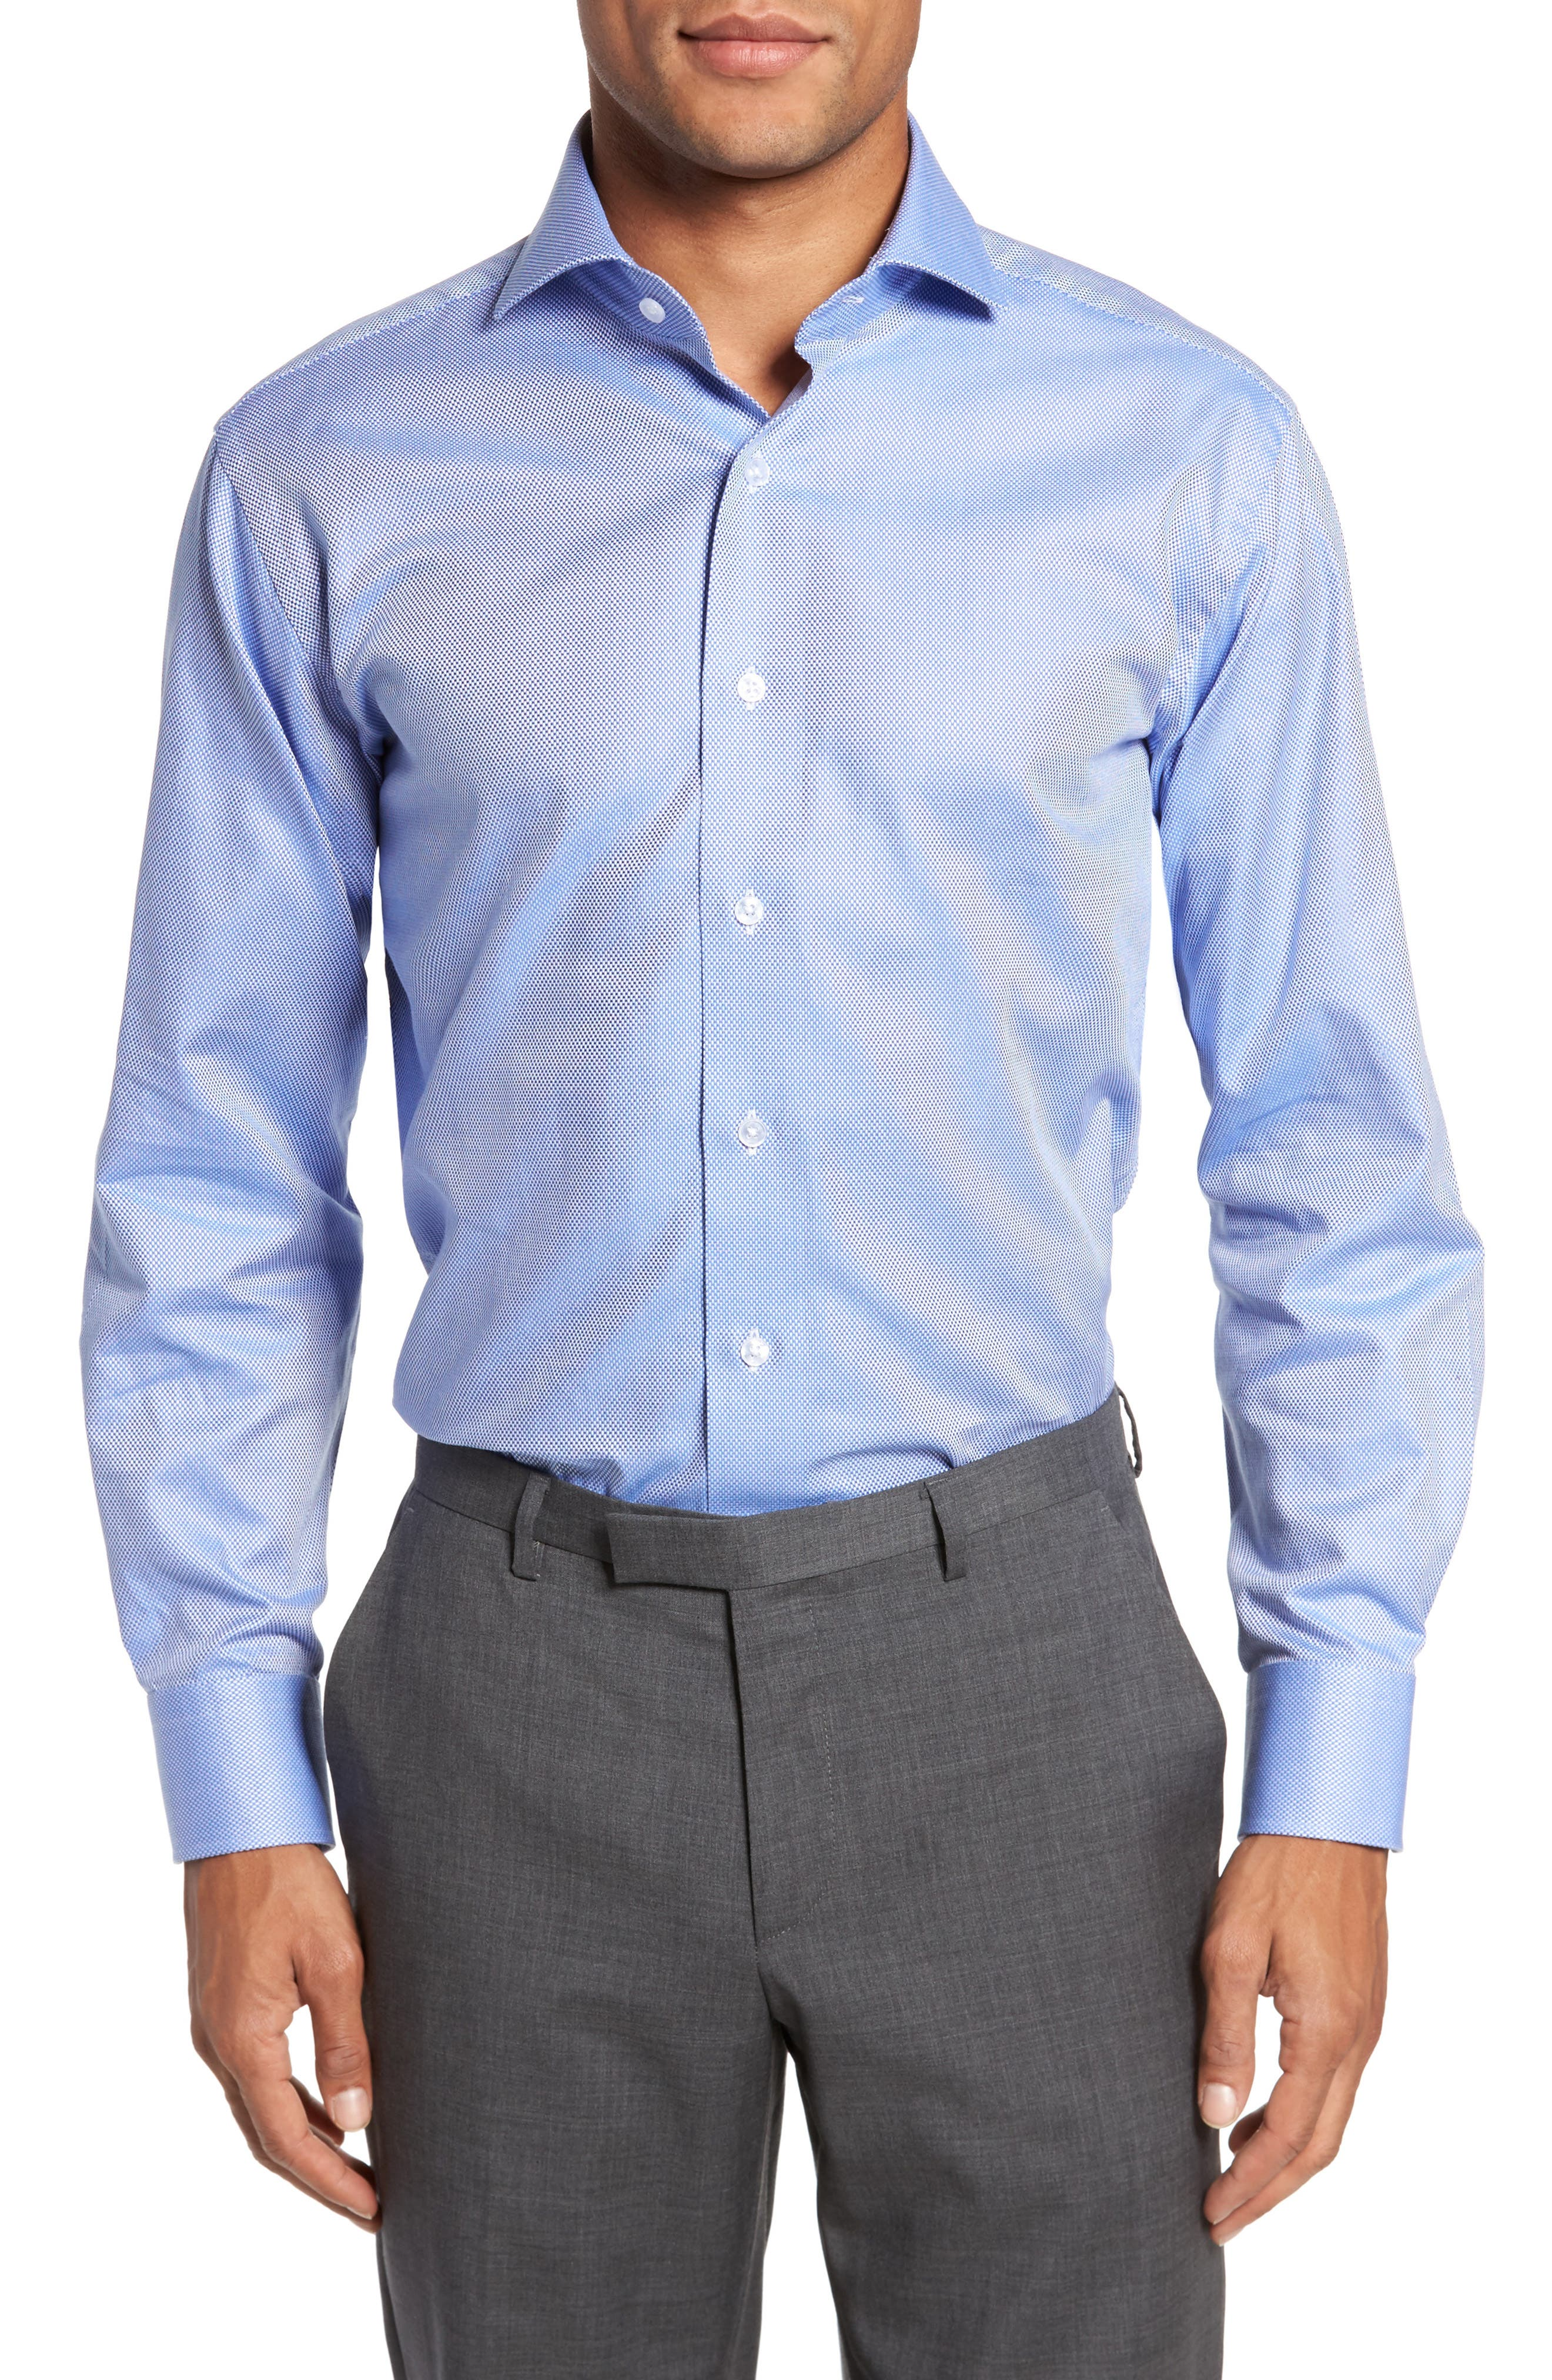 Lorenzo Uomo Trim Fit Texture Dress Shirt